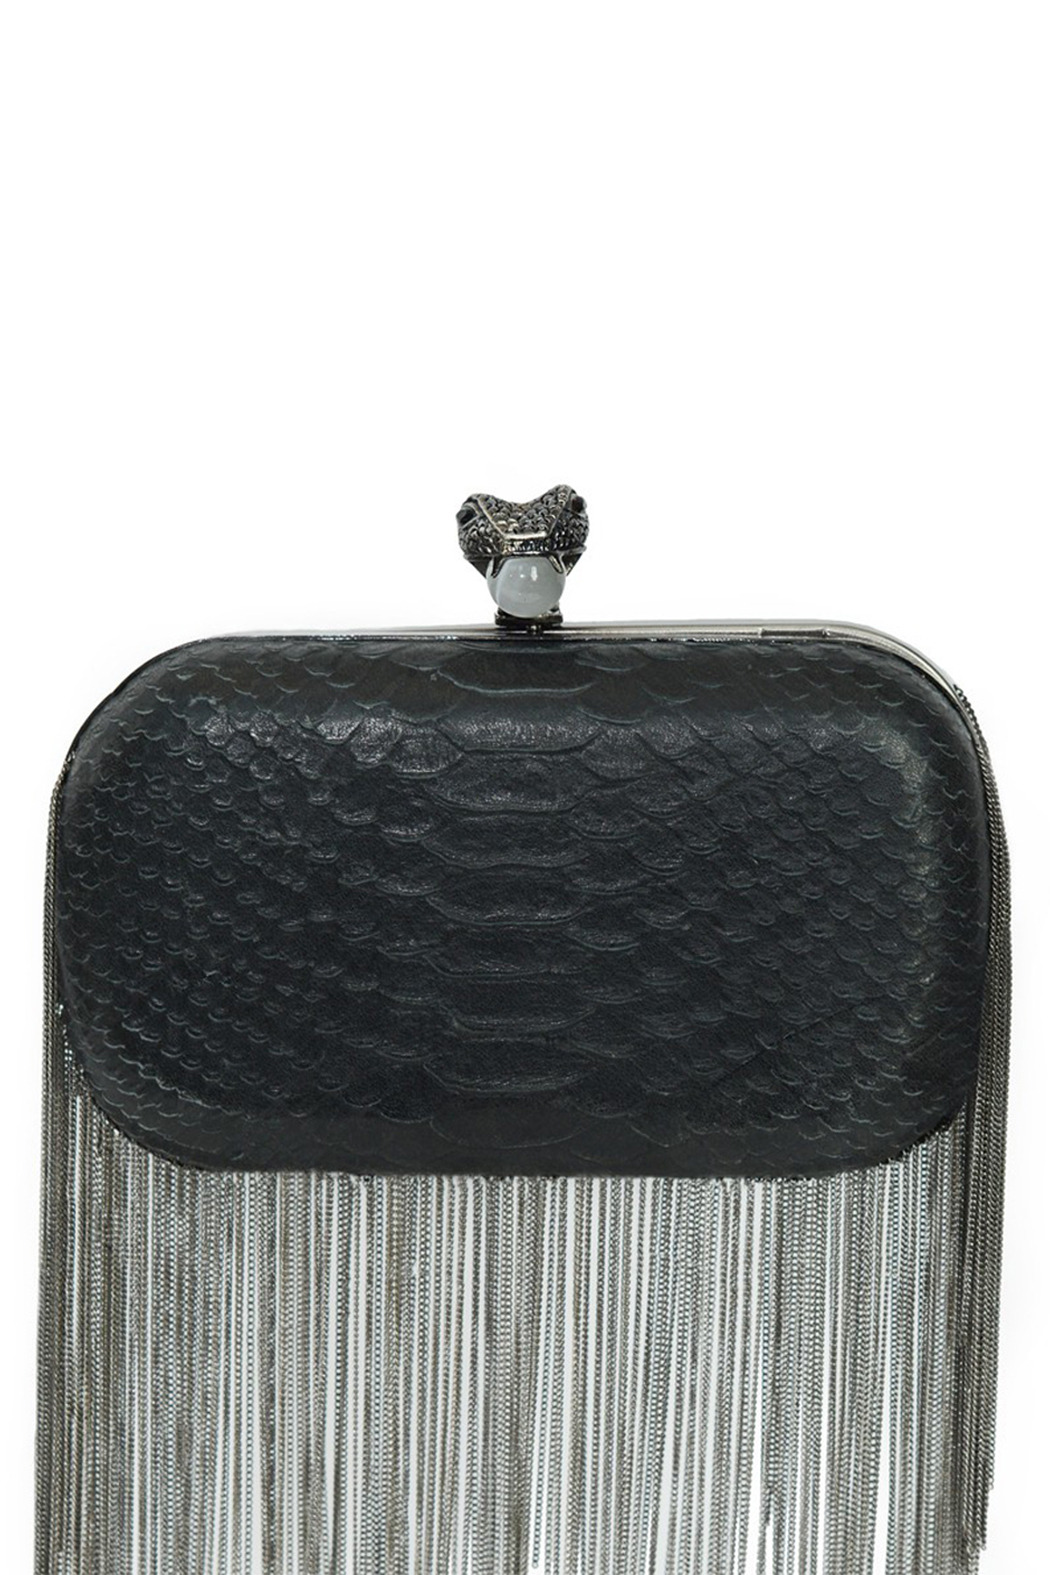 House of Harlow 1960 Jude Clutch - Front Full Image